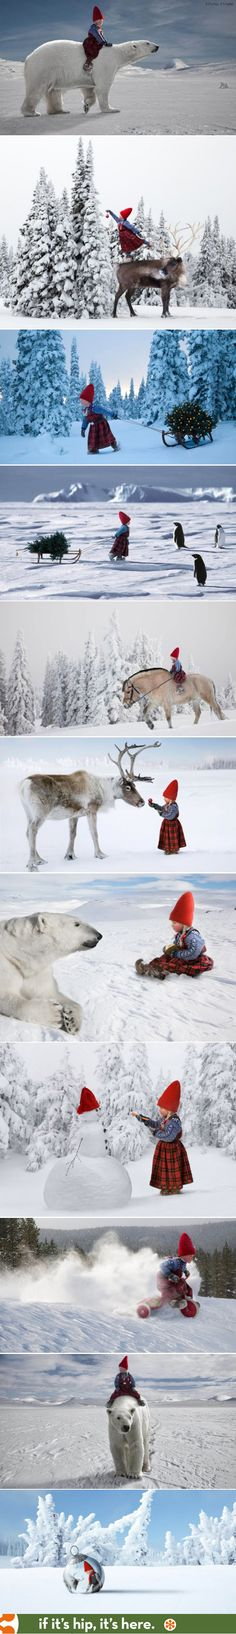 Enchanting Winter Magic photos of a Nordic Christmas | http://www.ifitshipitshere.com/winter-magic-spellbinding-photographs-by-per-breiehagen-for-italian-childrens-brand-chicco/